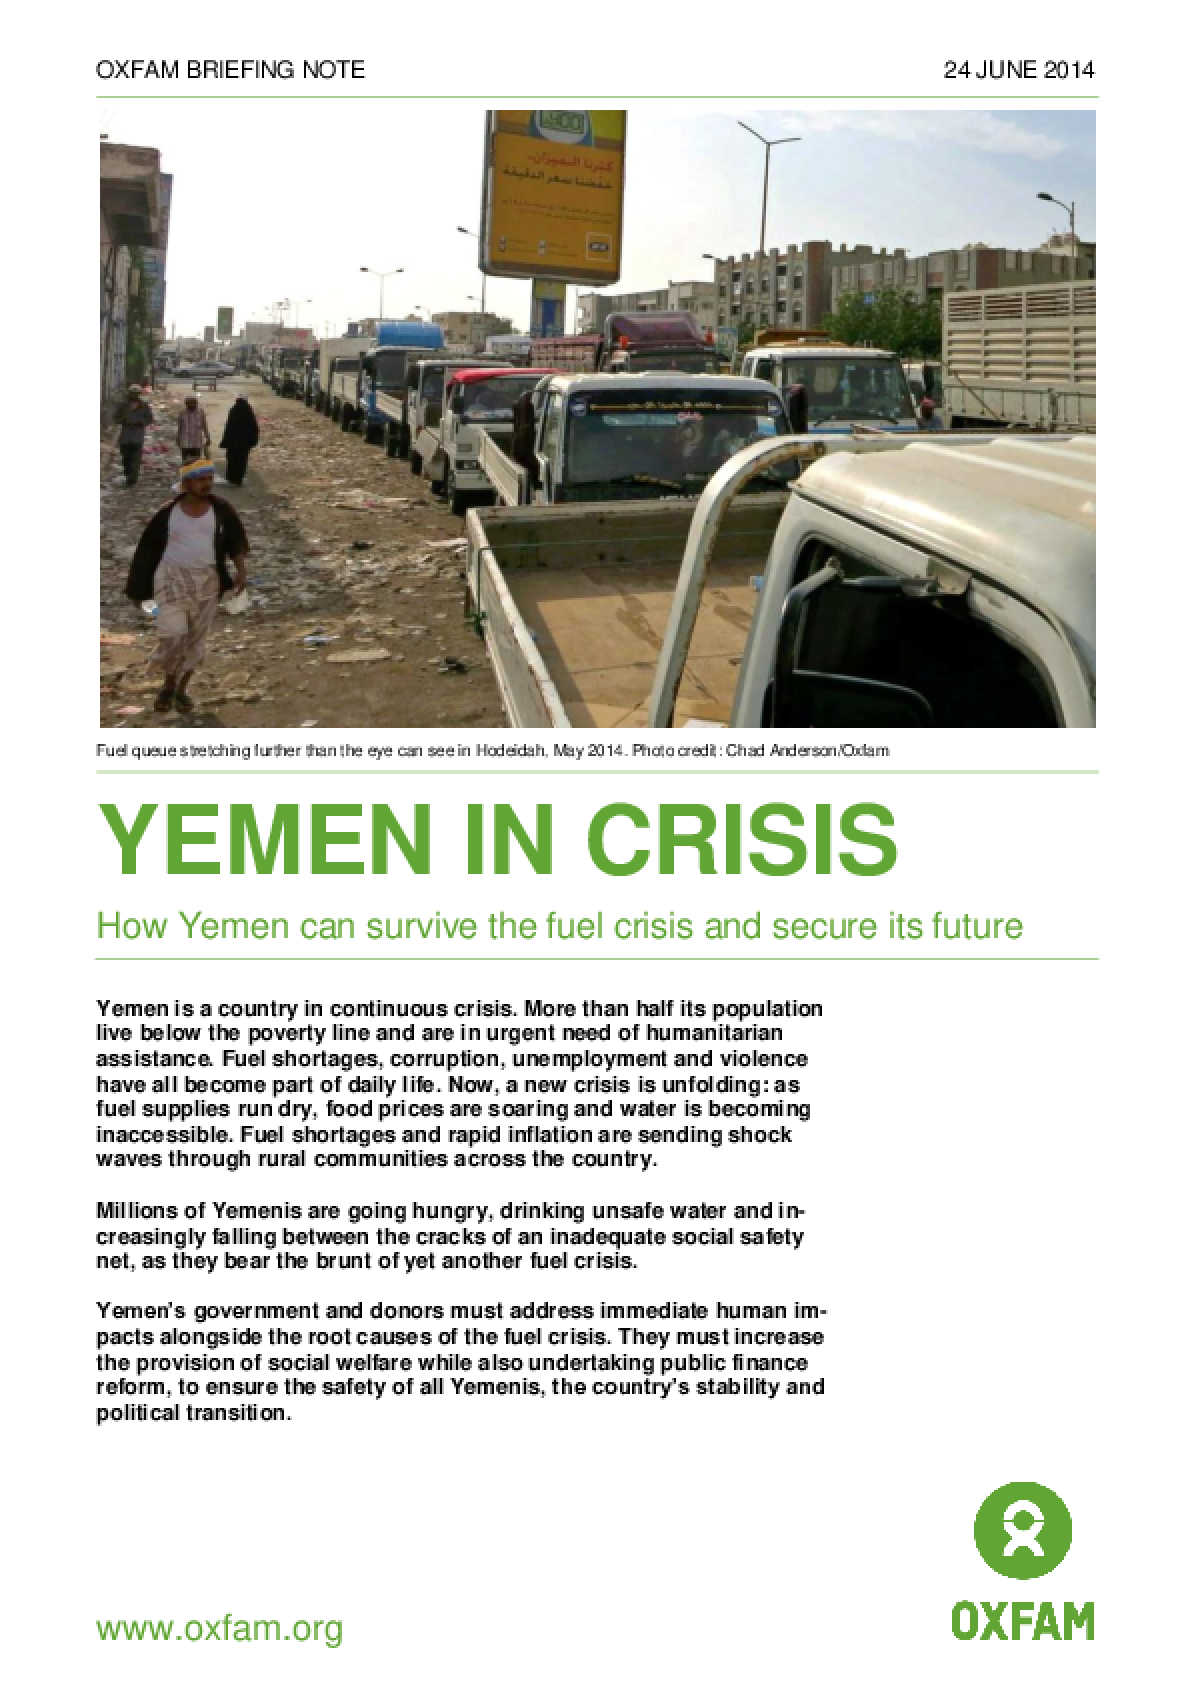 Yemen in Crisis: How Yemen can survive the fuel crisis and secure its future